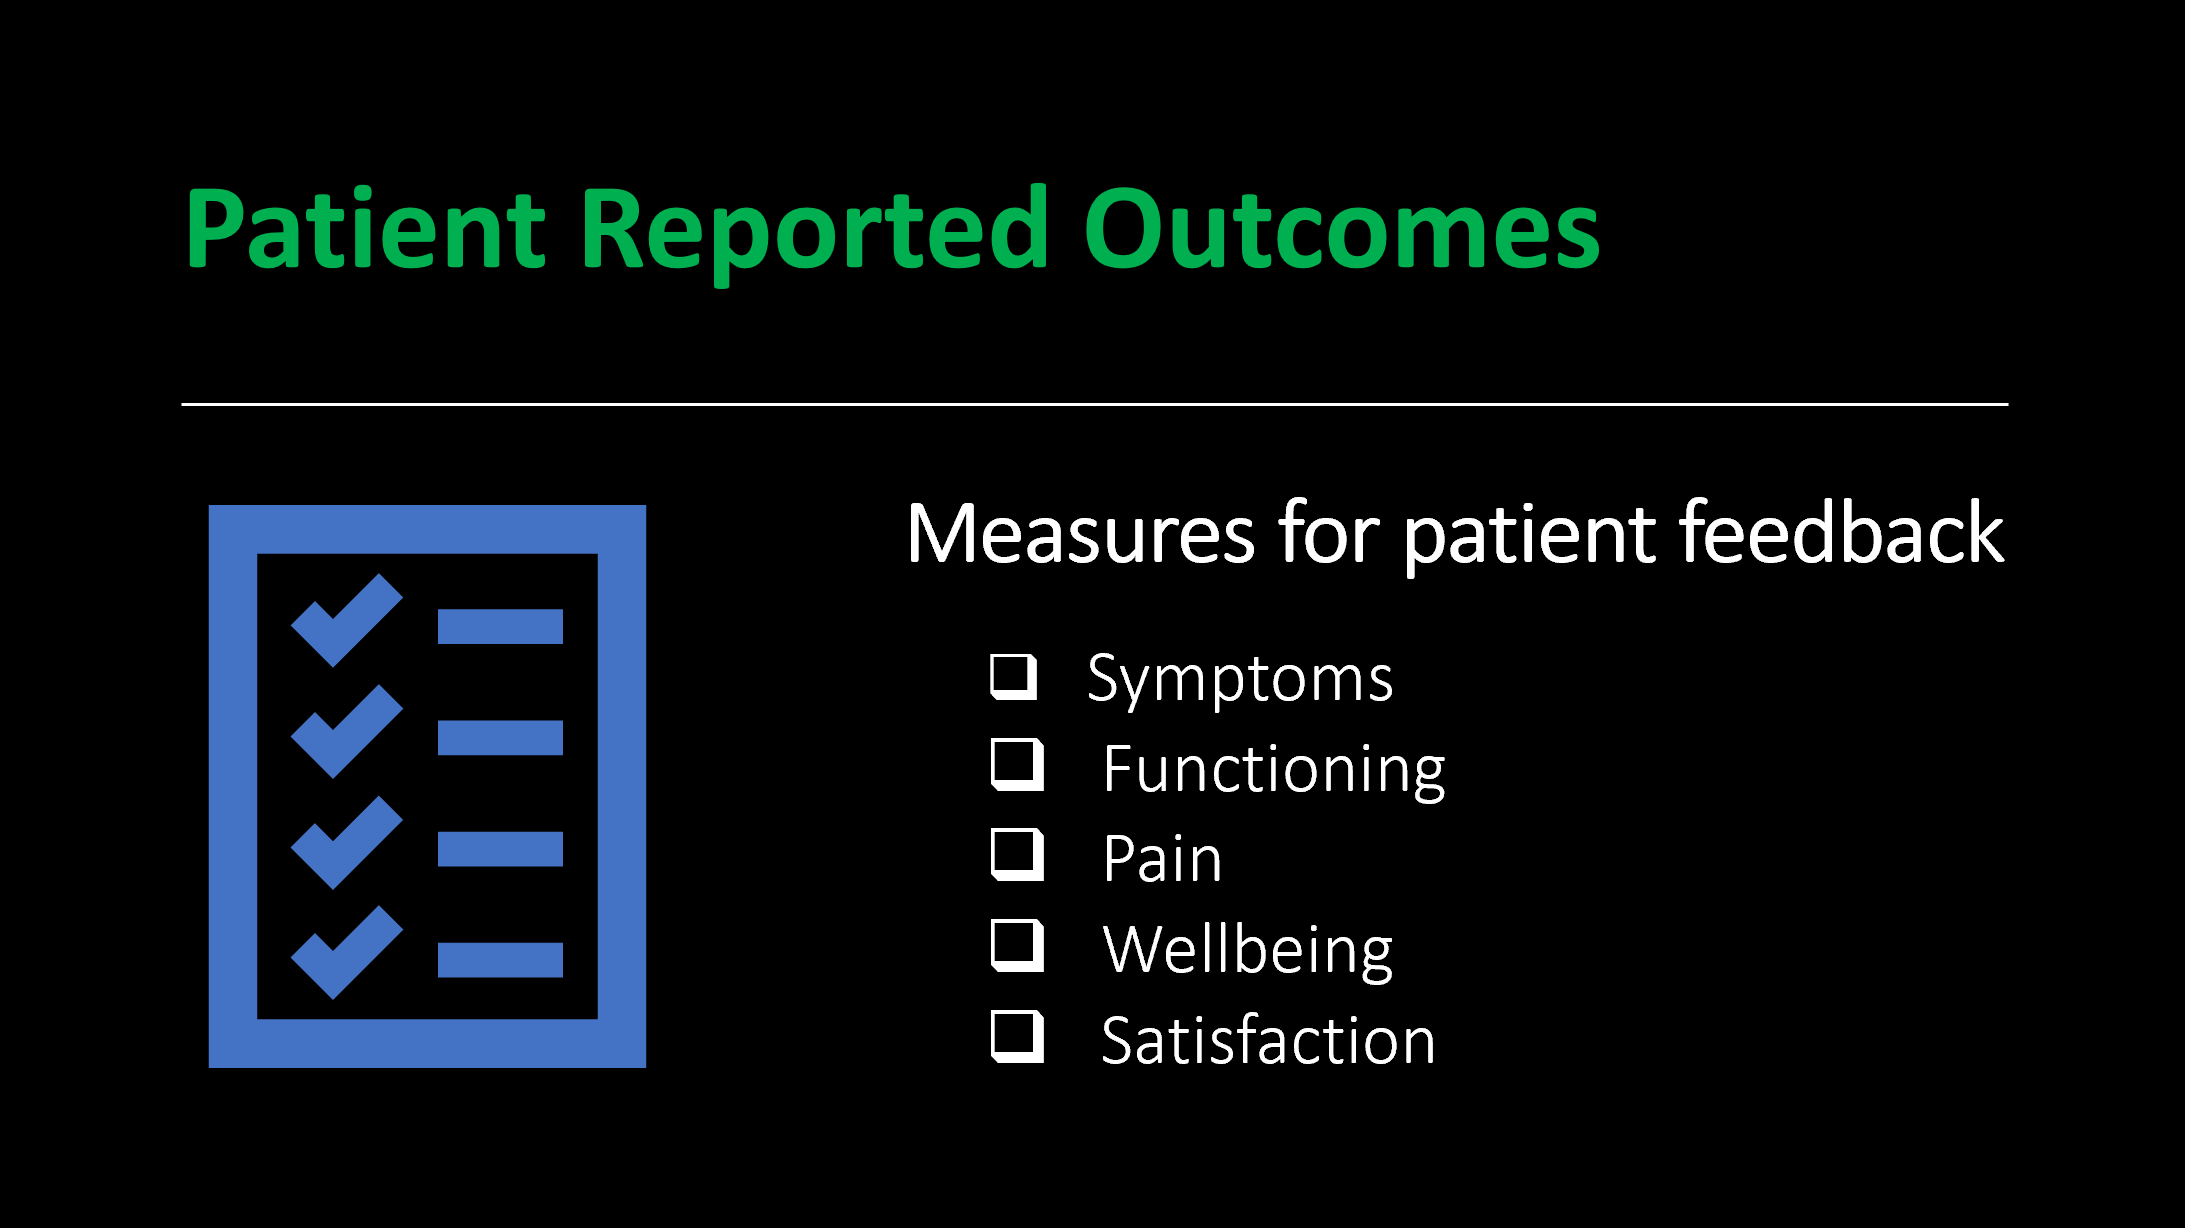 Patient reported outcomes.PNG